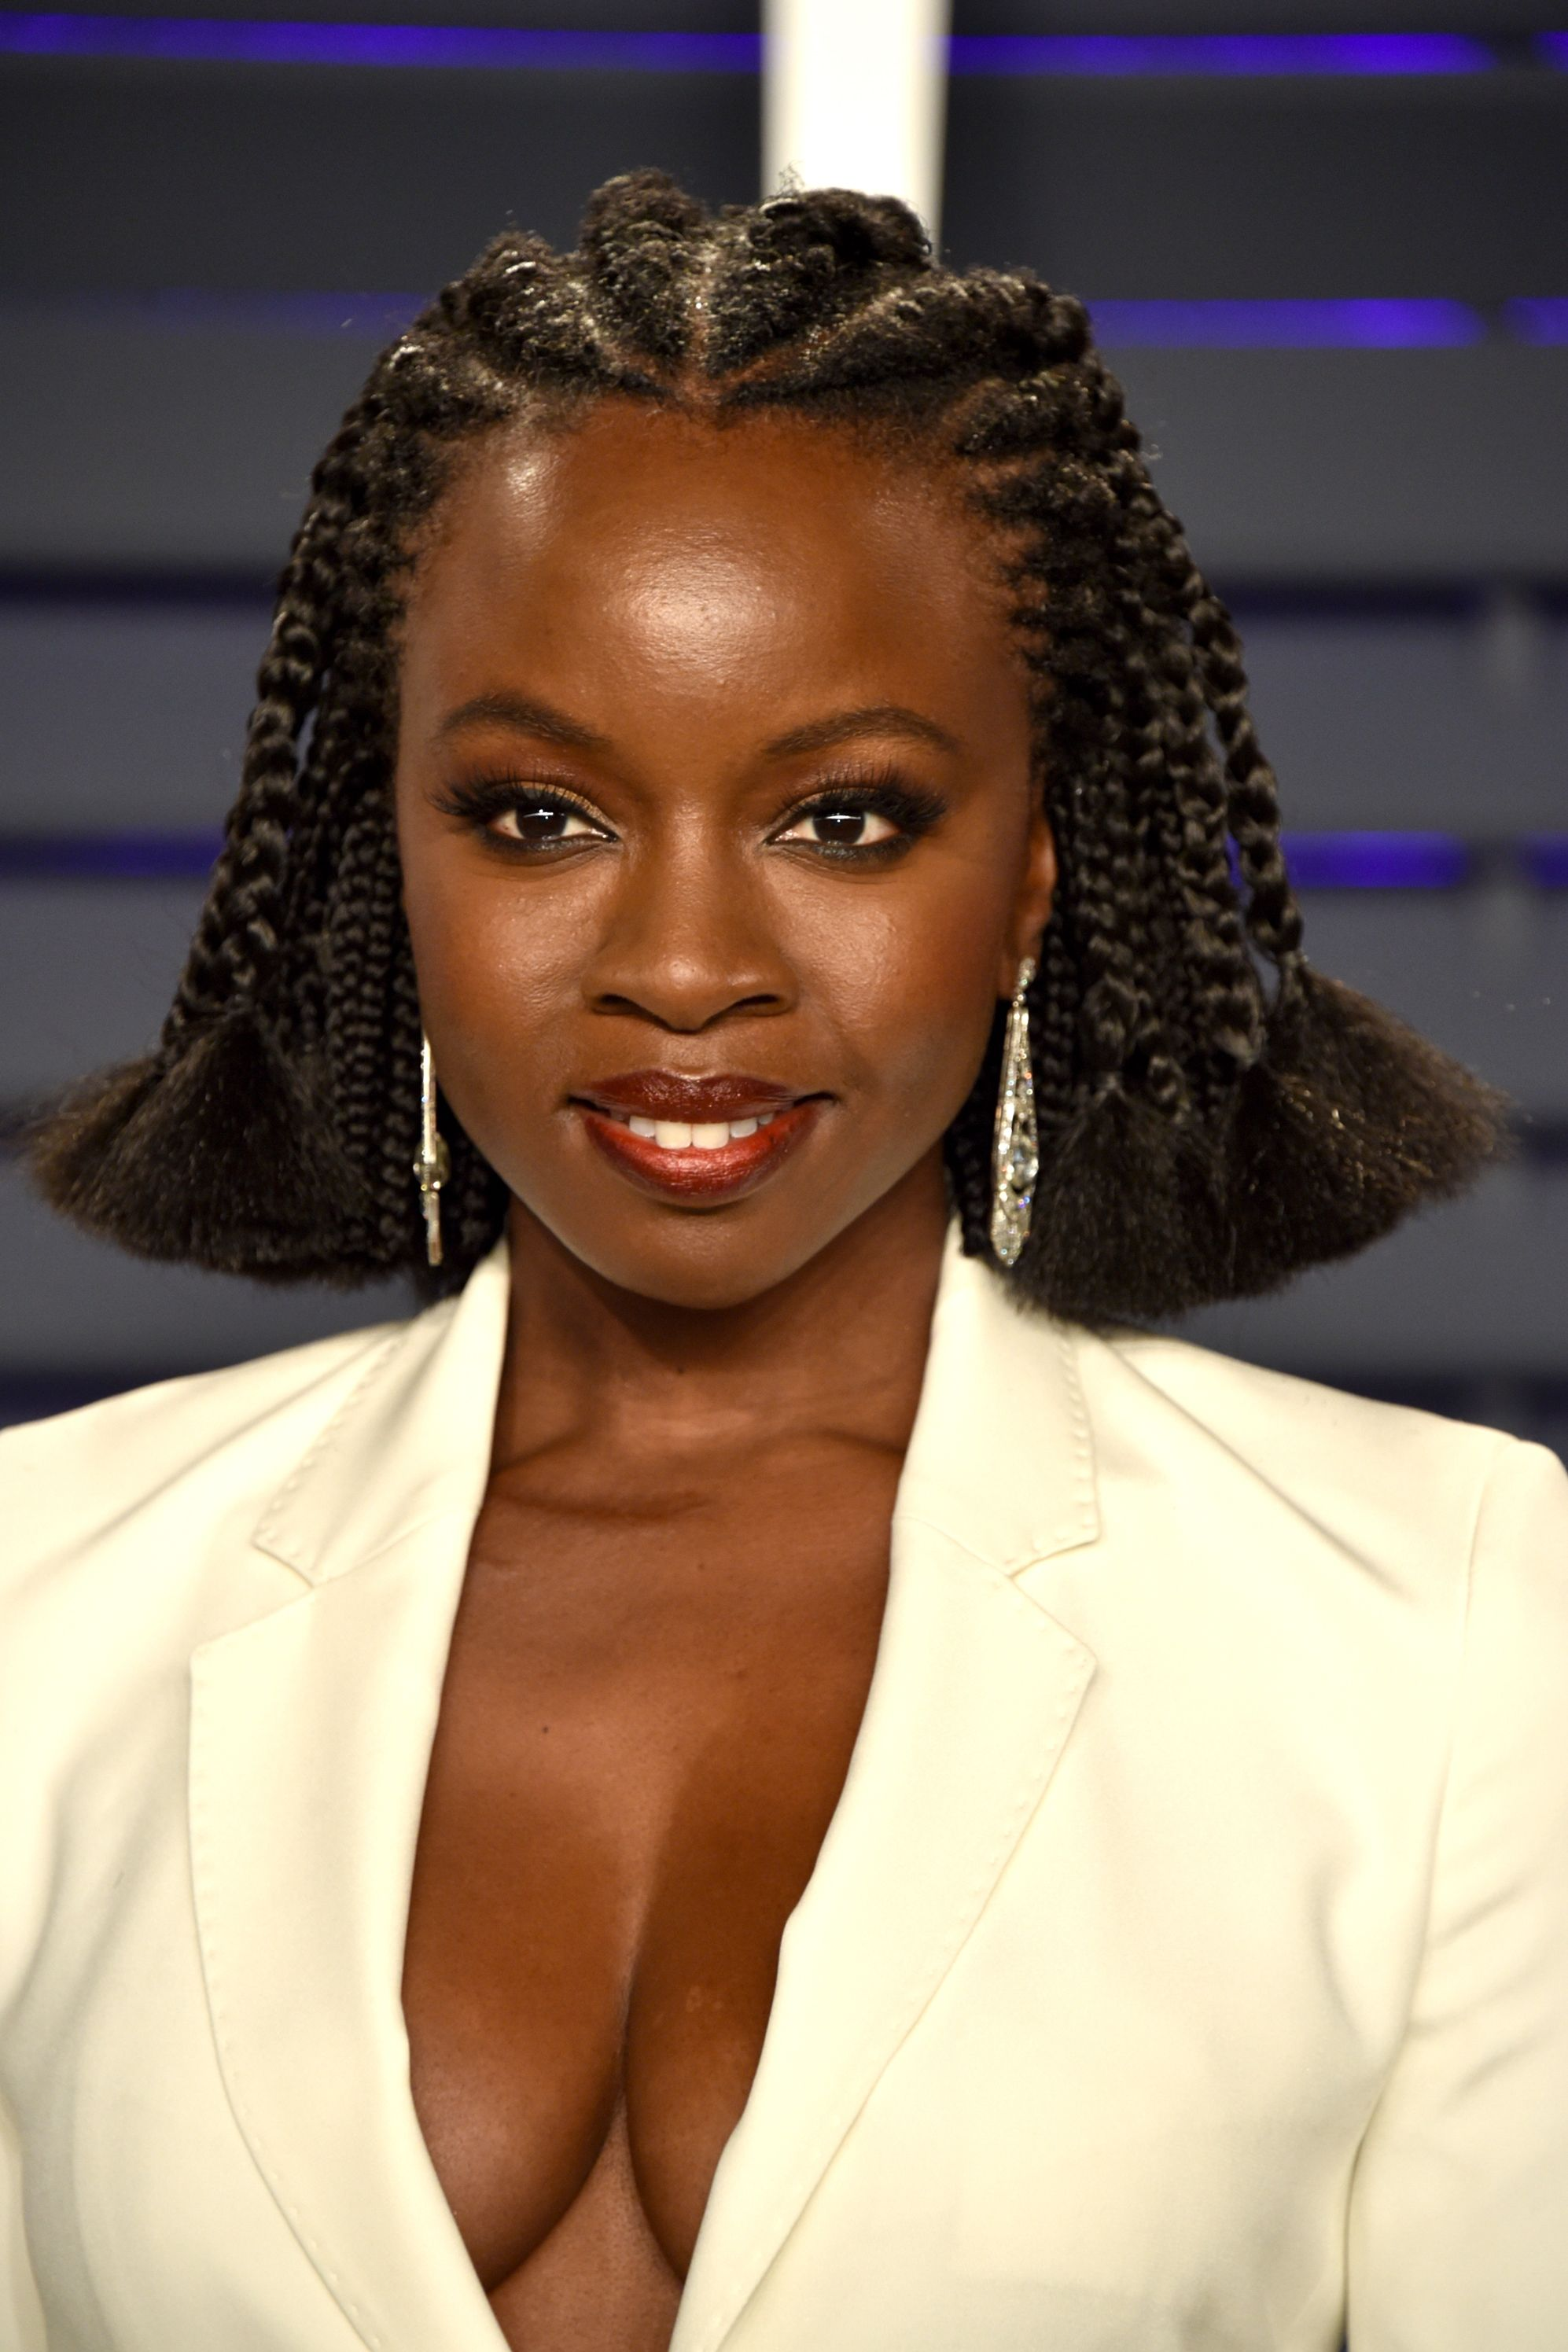 Danai Gurira Danai Gurira's braided lob stole the show at the 2019 Vanity Fair Oscars Party. Trying different textured styles, like braids, passion twists, bantu knots, and more look so good with bobs.